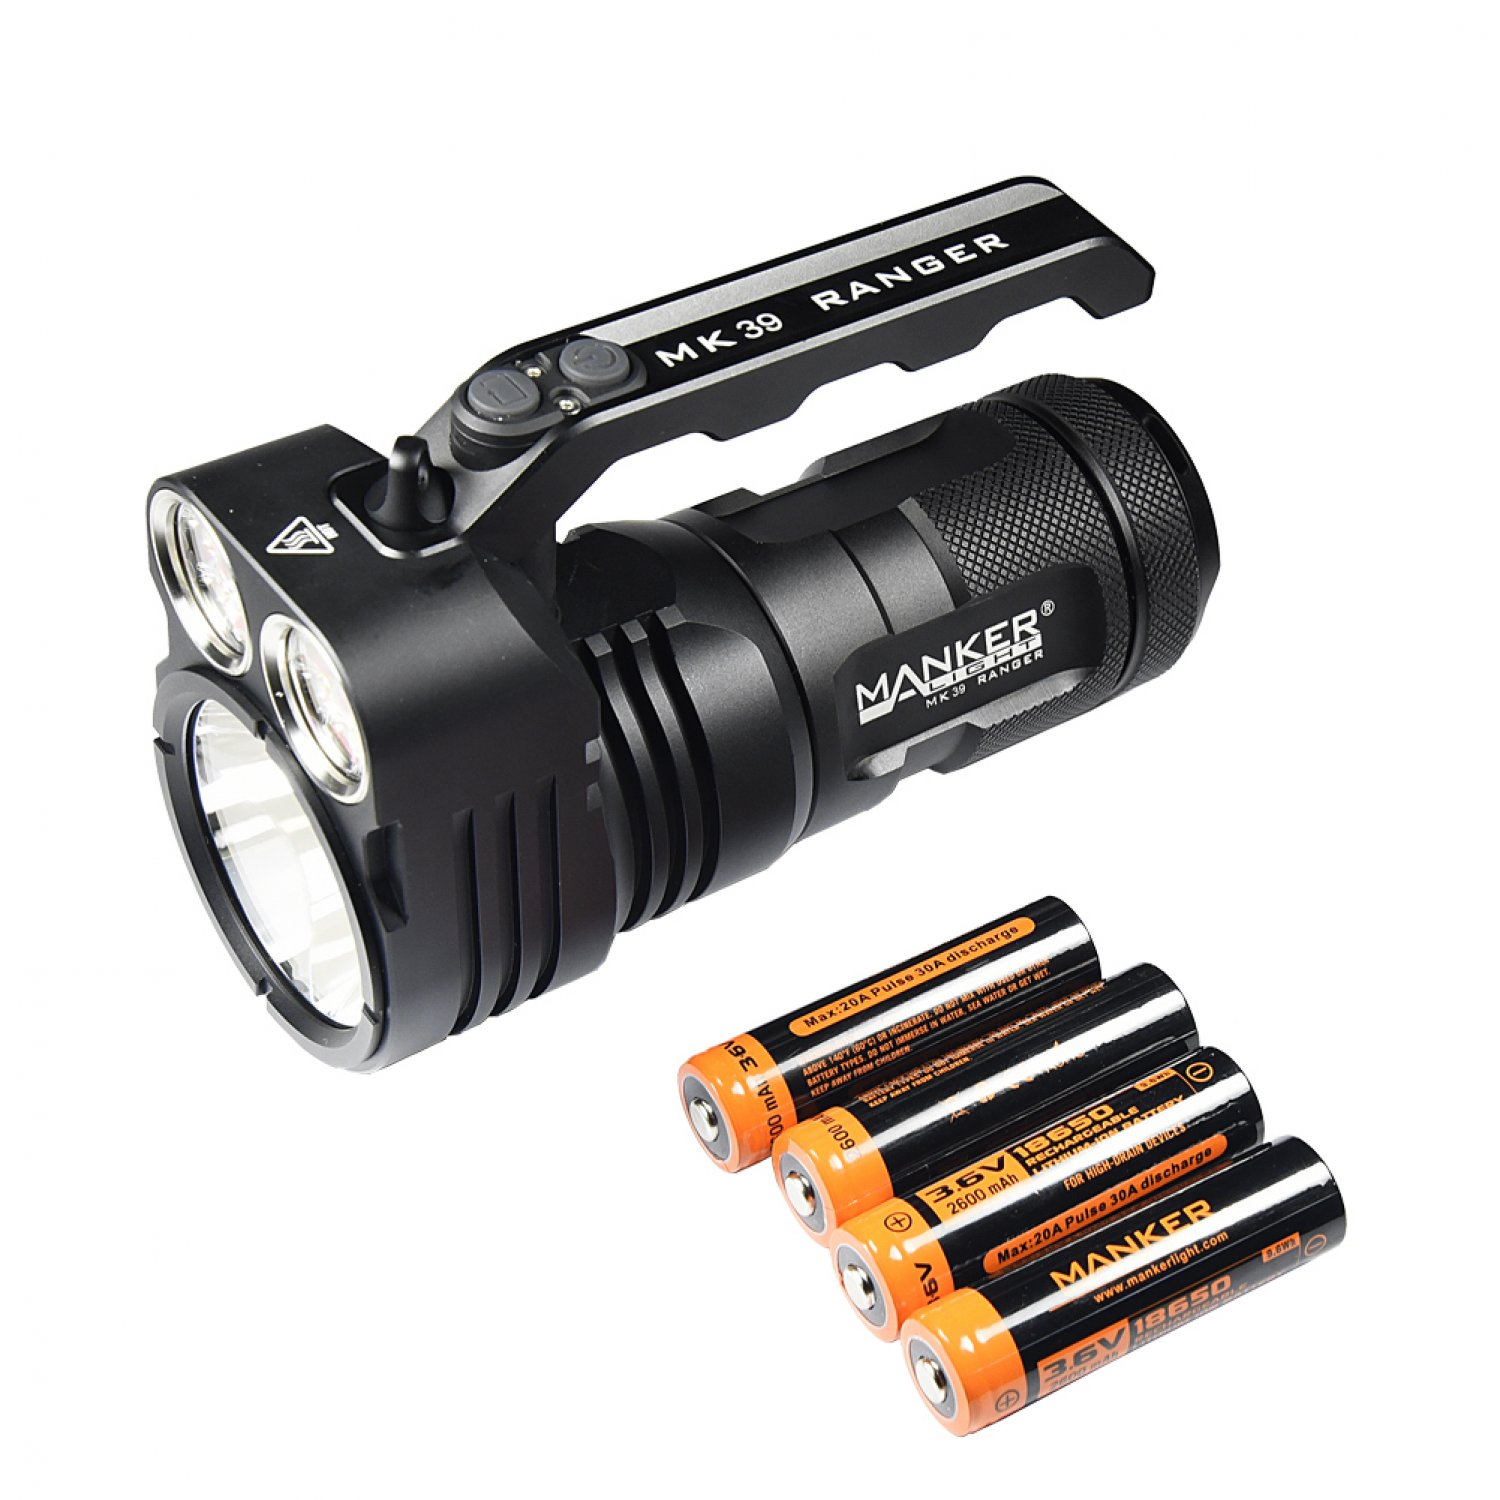 Manker MK39 Ranger NW Bundle - LED Lampe